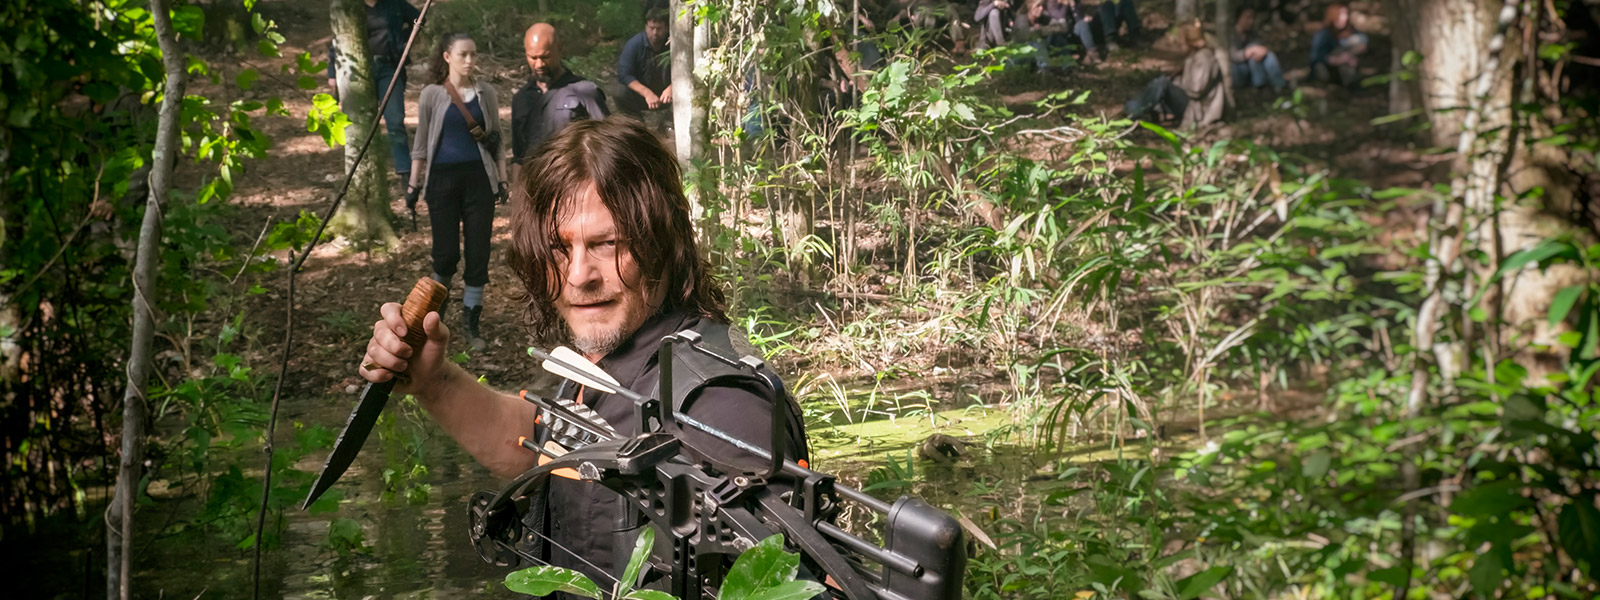 the-walking-dead-episode-811-daryl-reedus-post-800×600